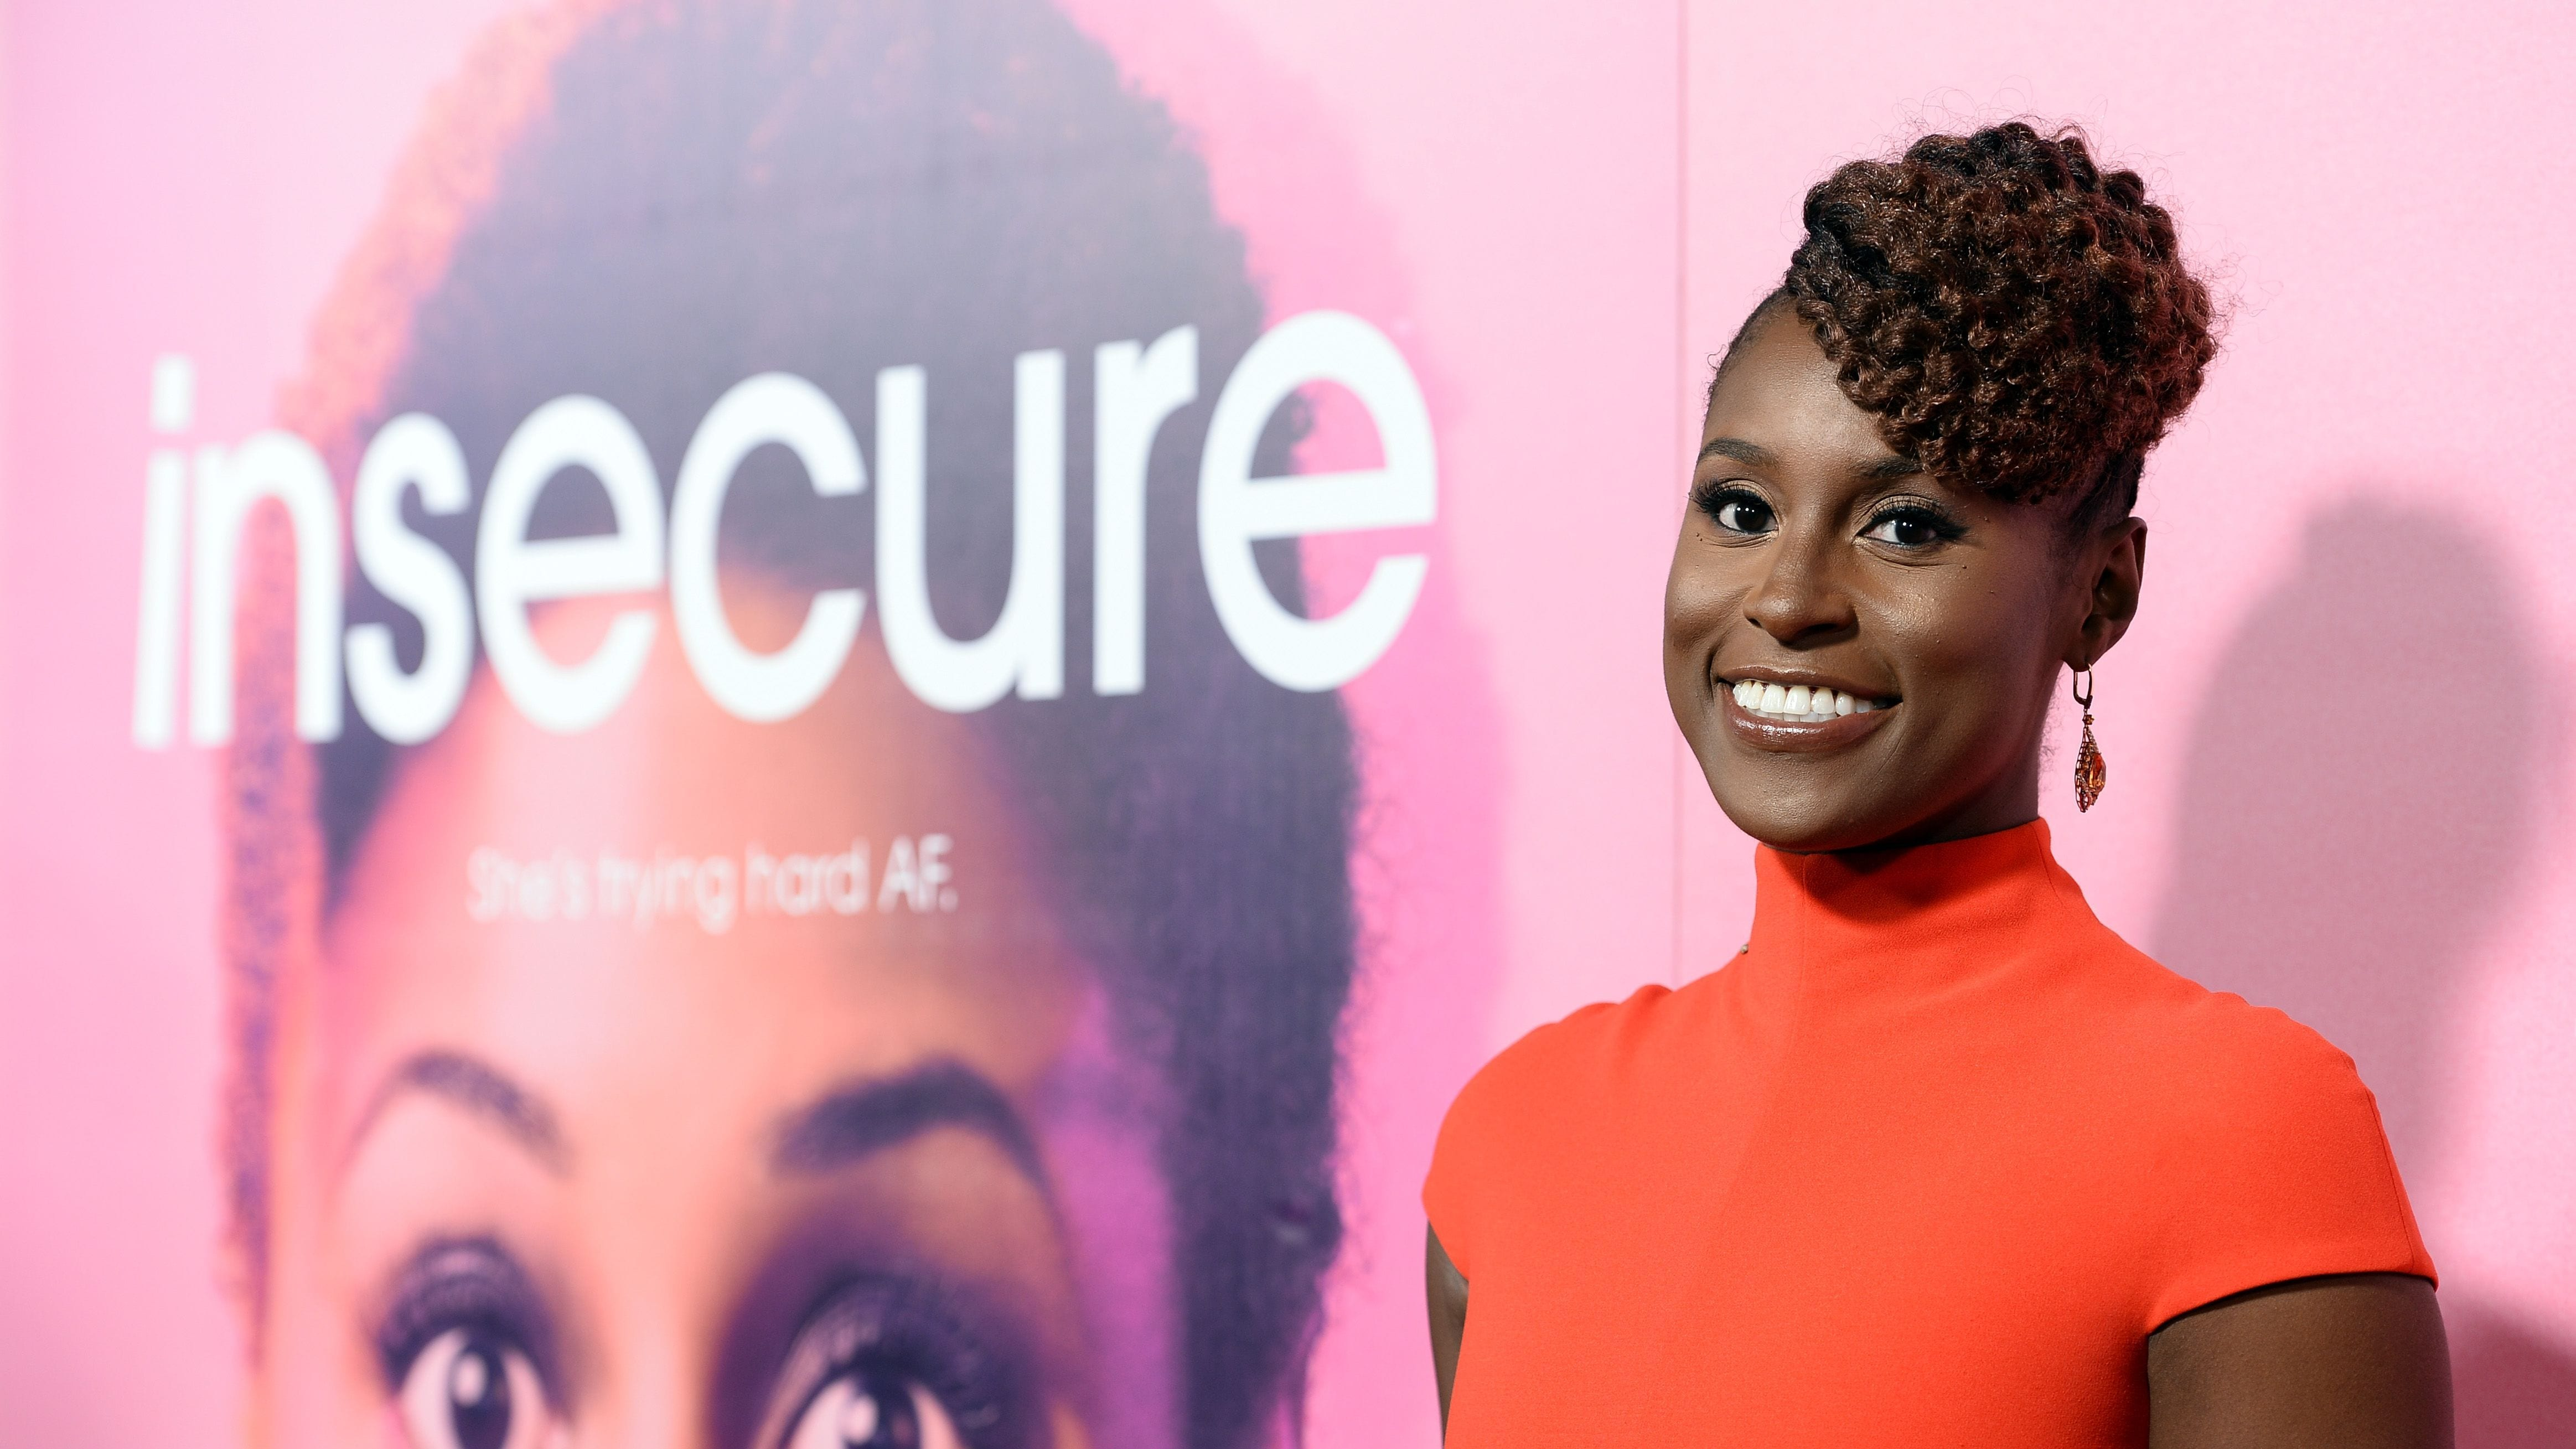 Insecure Season 4 update, Cast And Plot DetailsInsecure Season 4 update